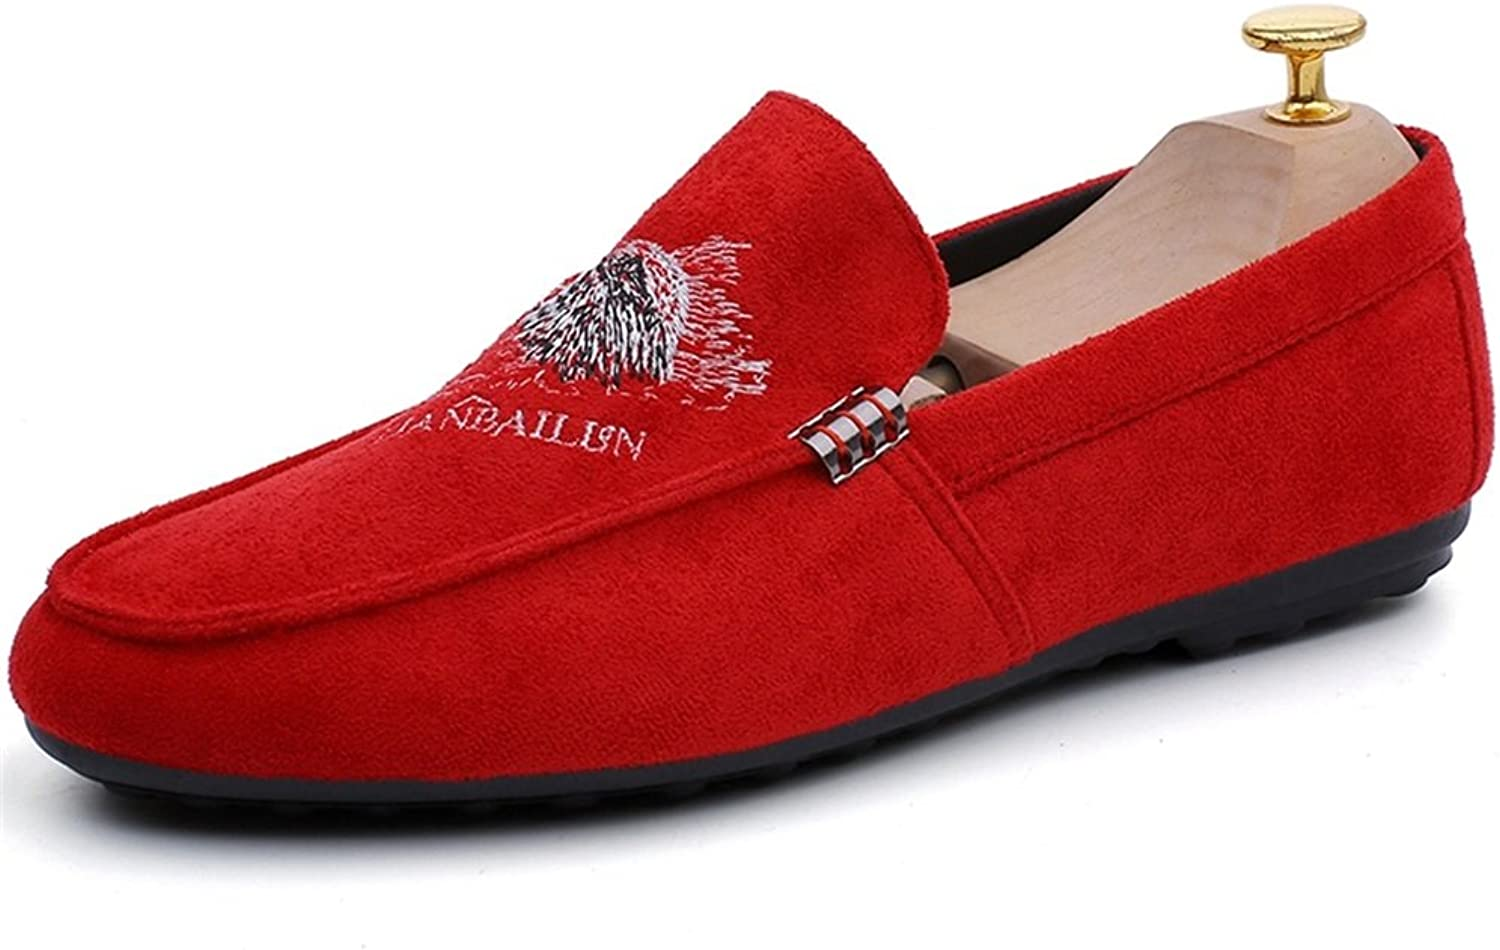 GLSHI Men's shoes Suede Formal shoes Light Soles Loafers & Slip-Ons For Casual Office & Career Outdoor Red Black